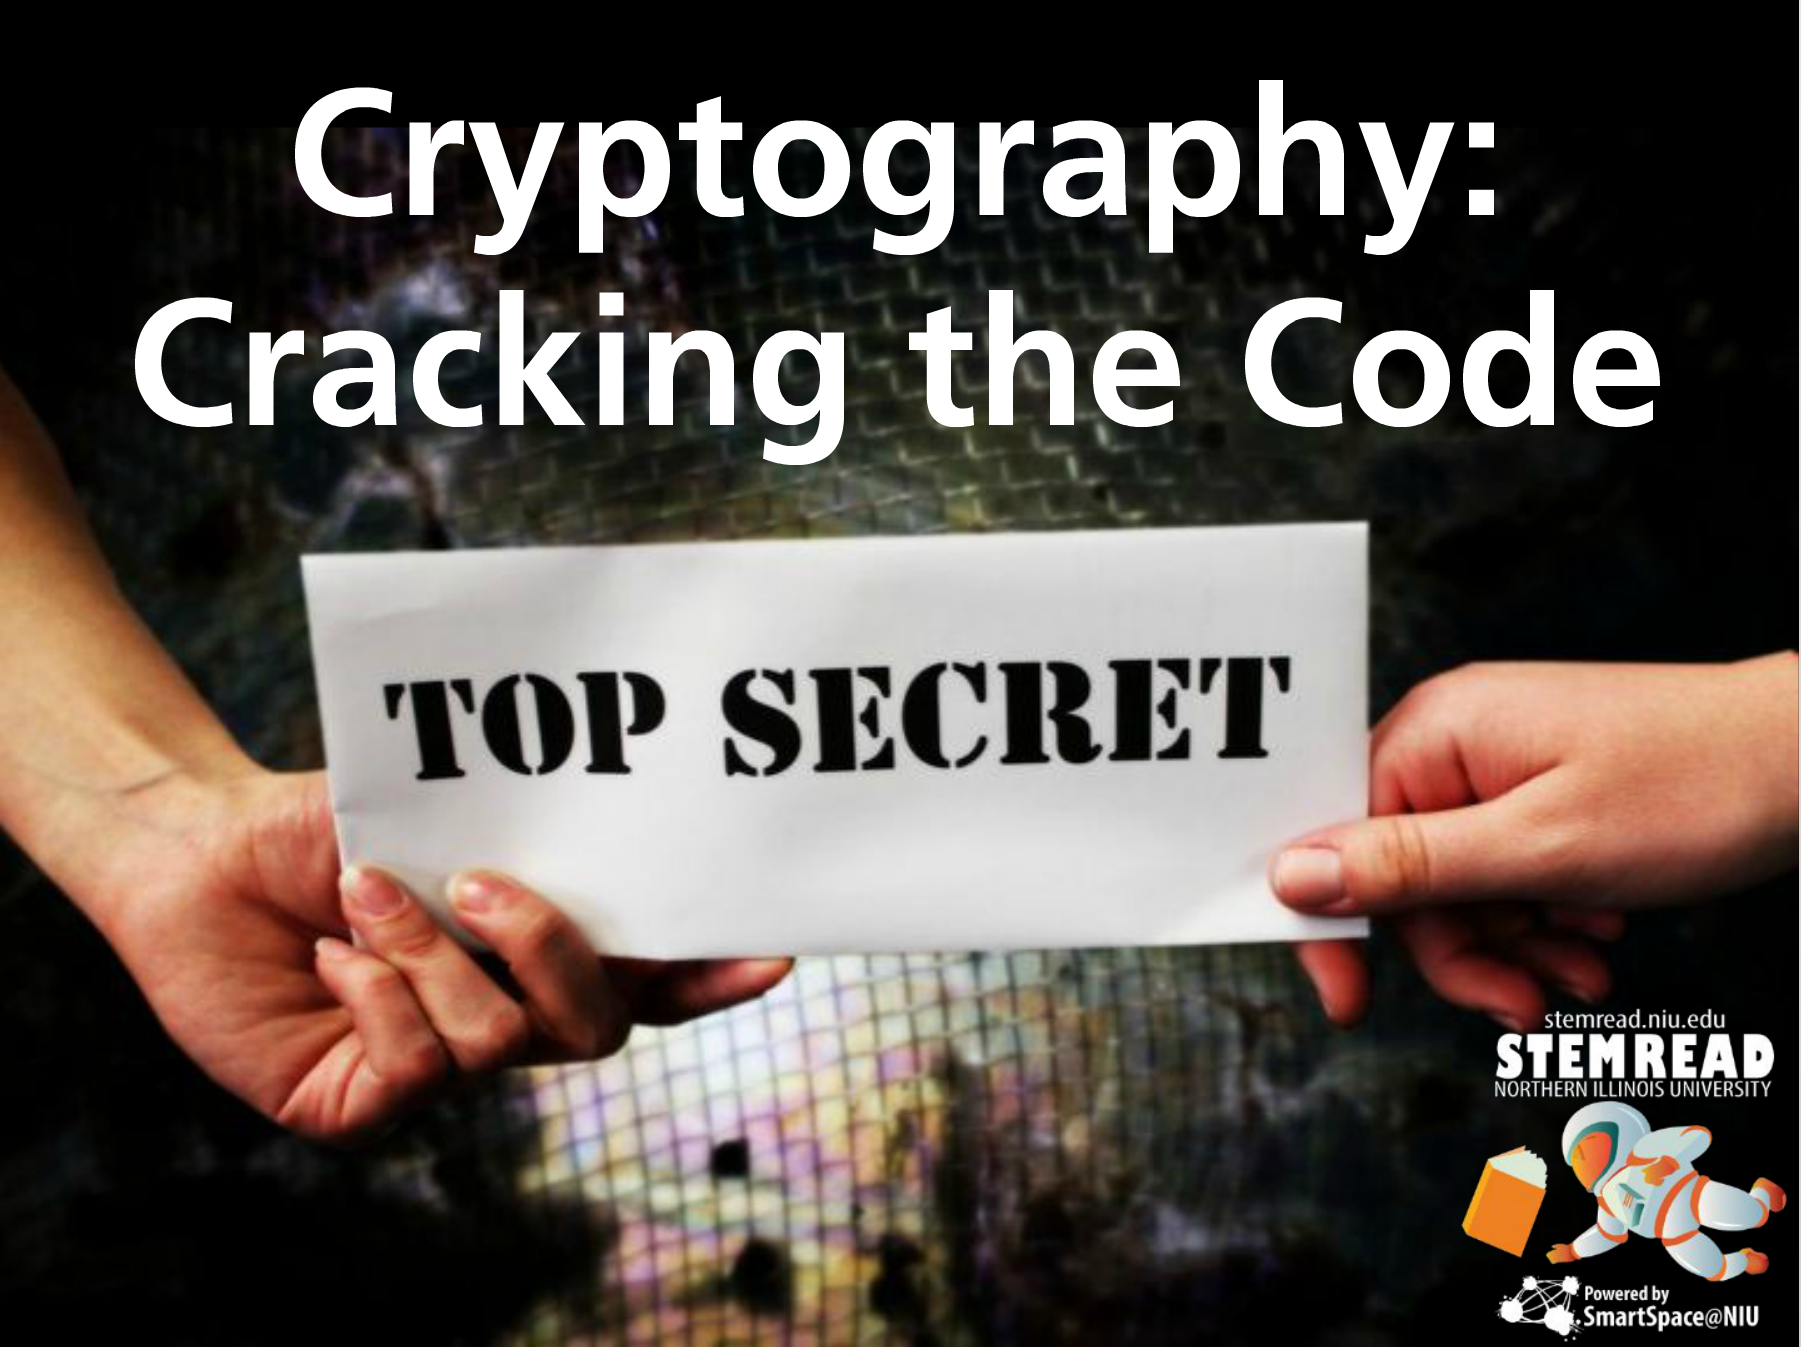 Play this online game to learn more about cryptography, solve ...